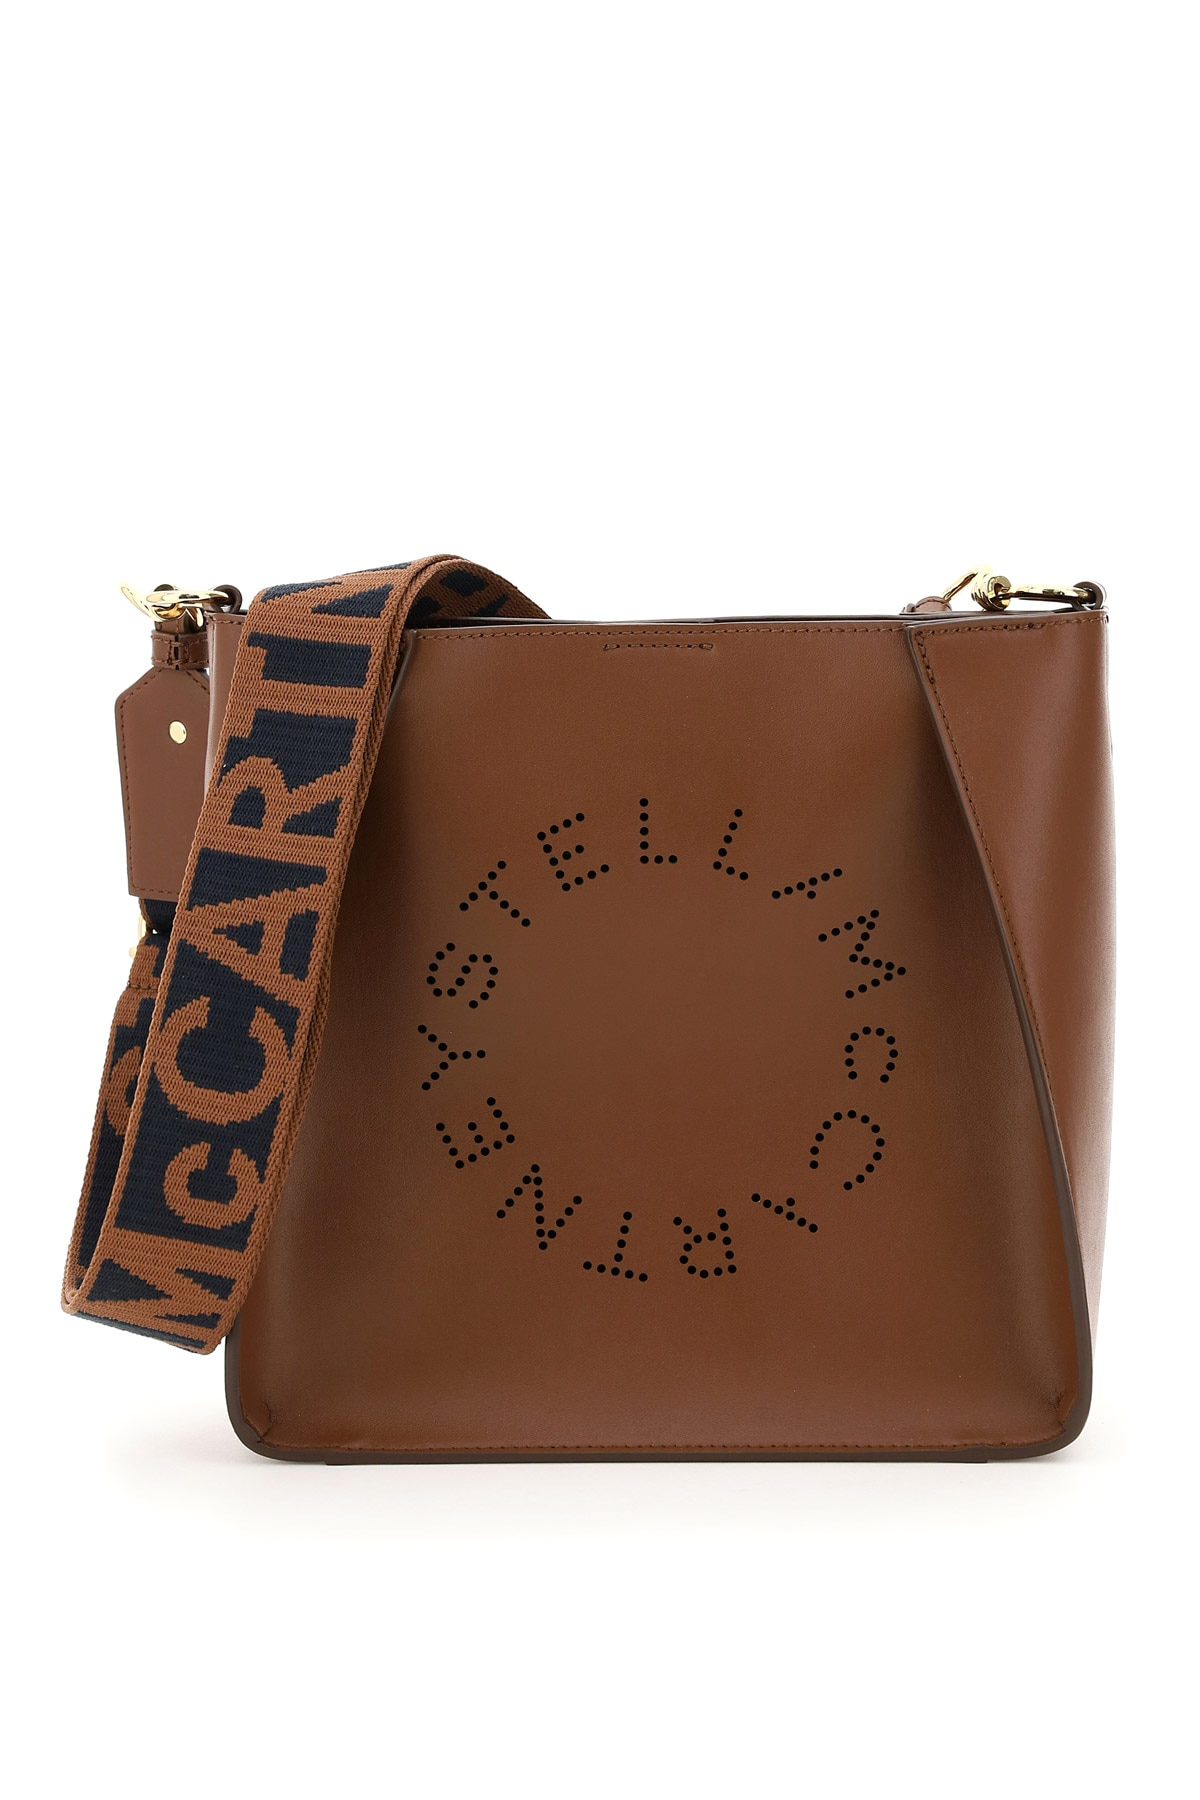 Stella Mccartney STELLA PERFORATED LOGO SHOULDER BAG